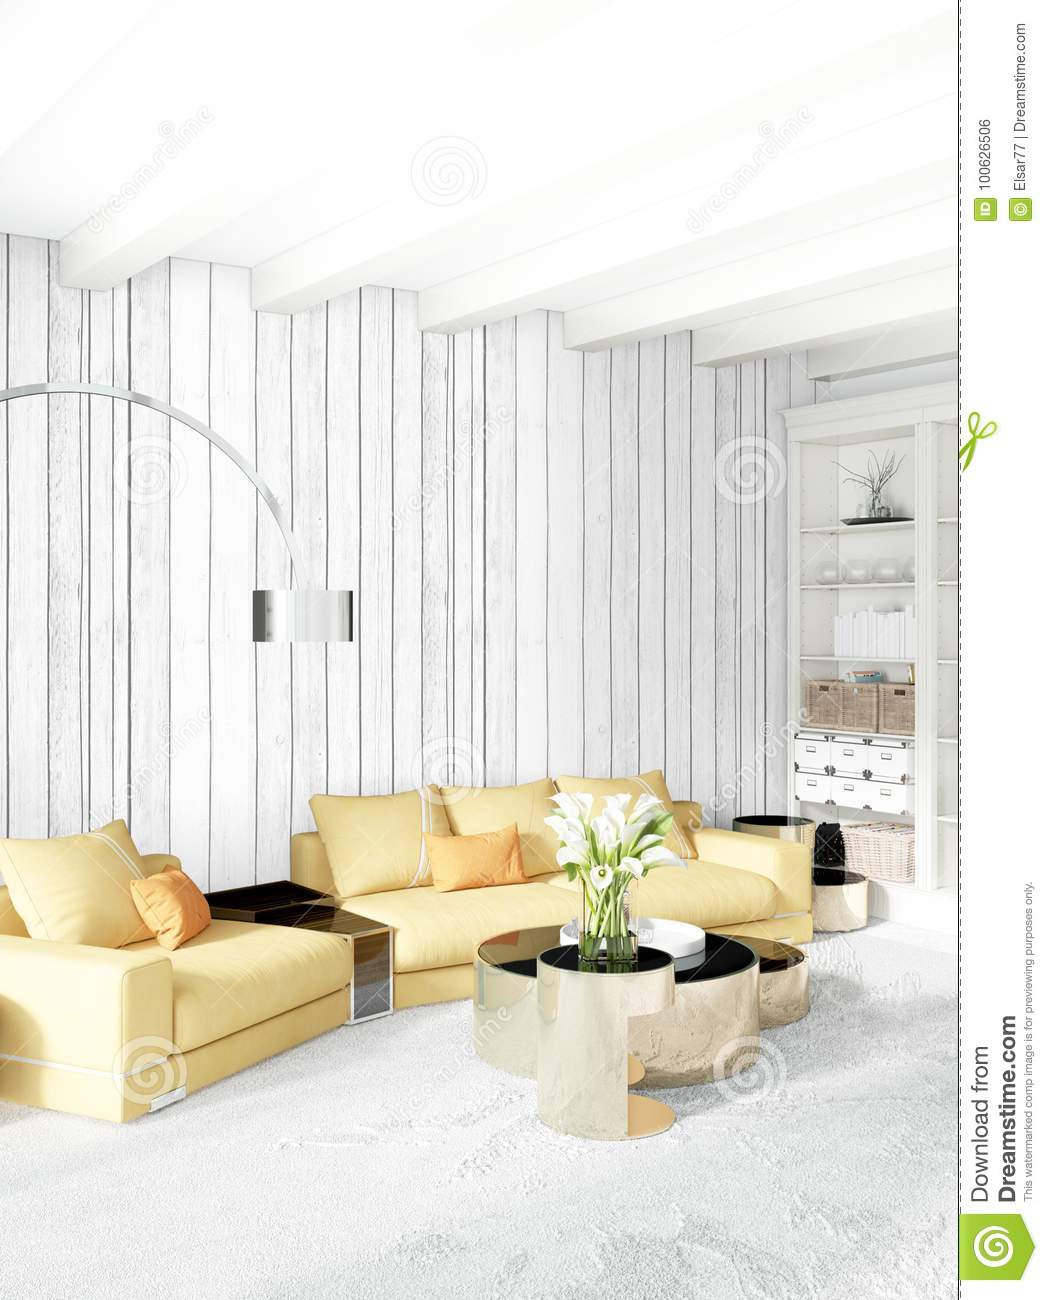 Modern bedroom yellow sofa luxury minimal style interior loft design with eclectic wall 3d rendering